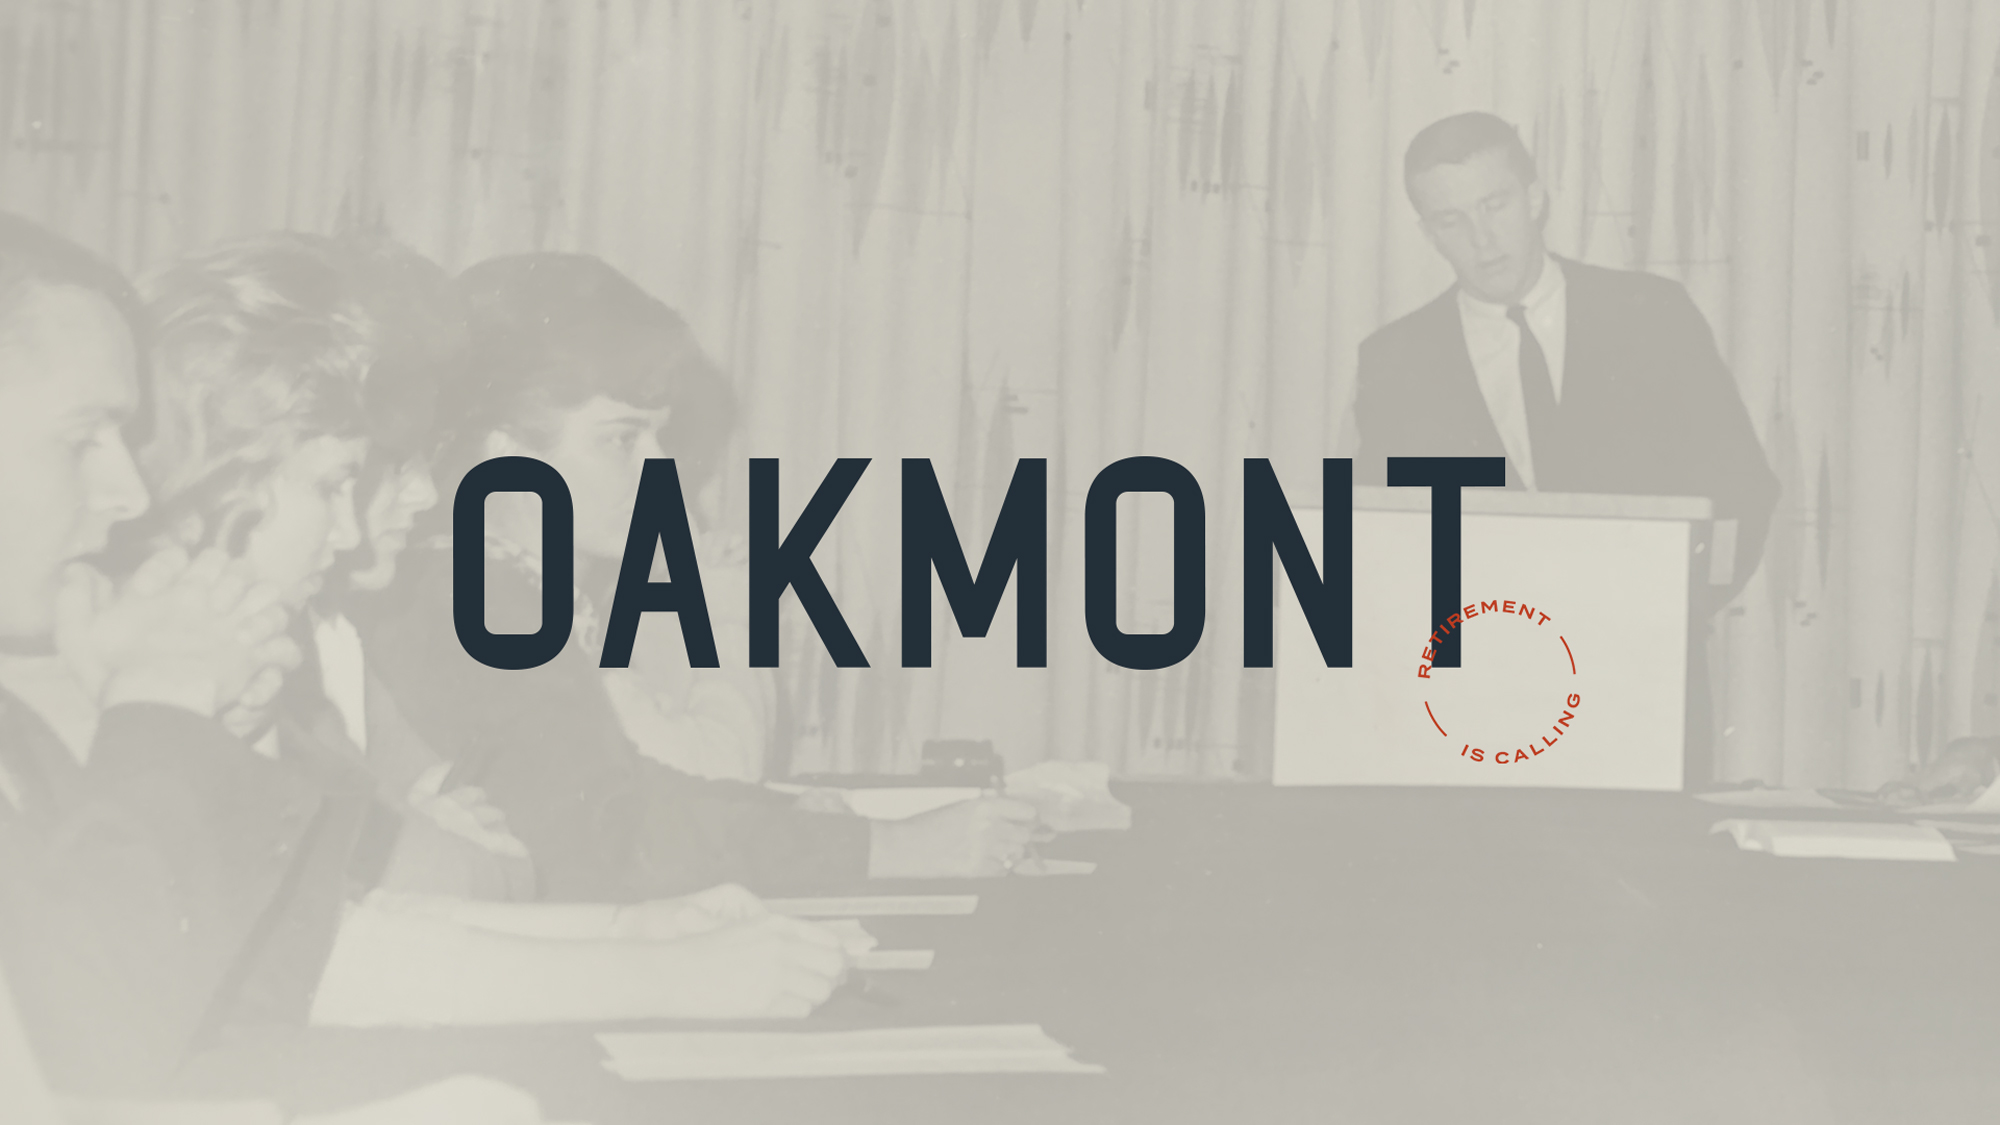 Old photo of Ralph with Oakmont logo overlaid